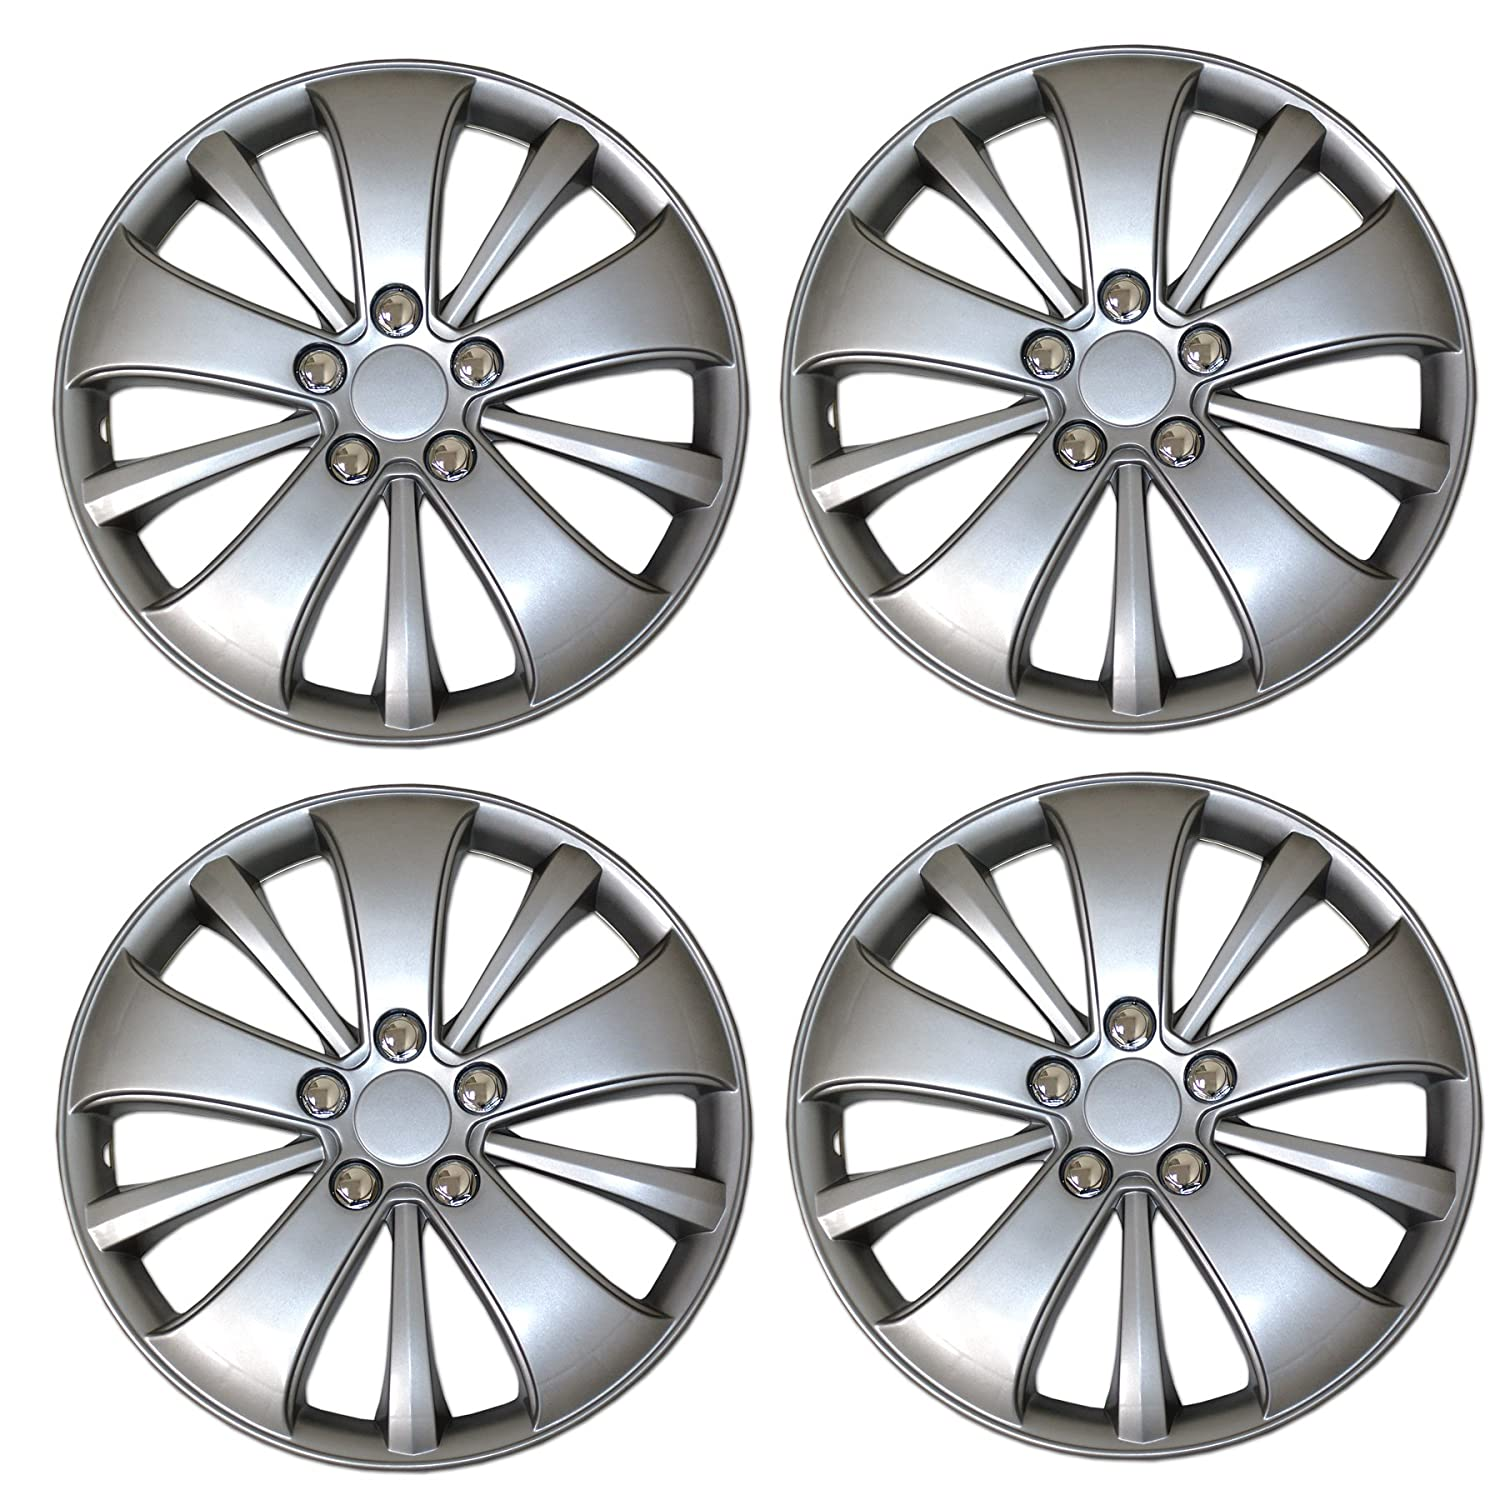 14-Inches Metallic Silver Hubcaps Wheel Cover TuningPros WSC3-615S14 4pcs Set Snap-On Type Pop-On